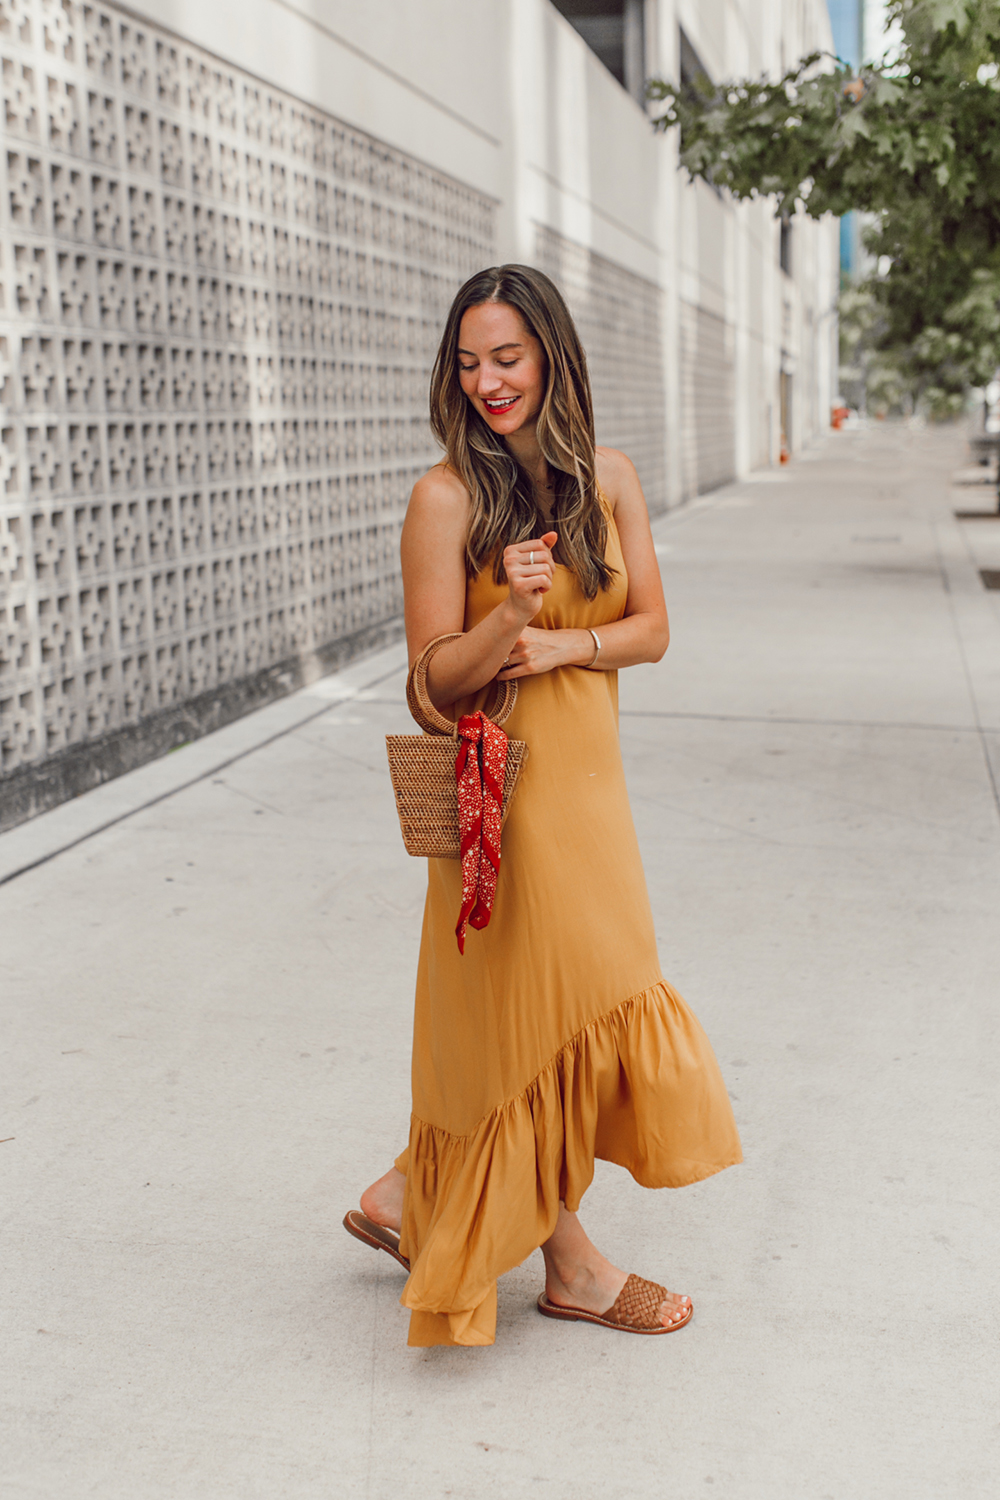 livvyland-blog-olivia-watson-mustard-canary-yellow-maxi-dress-love-sadie-summer-date-night-outfit-5